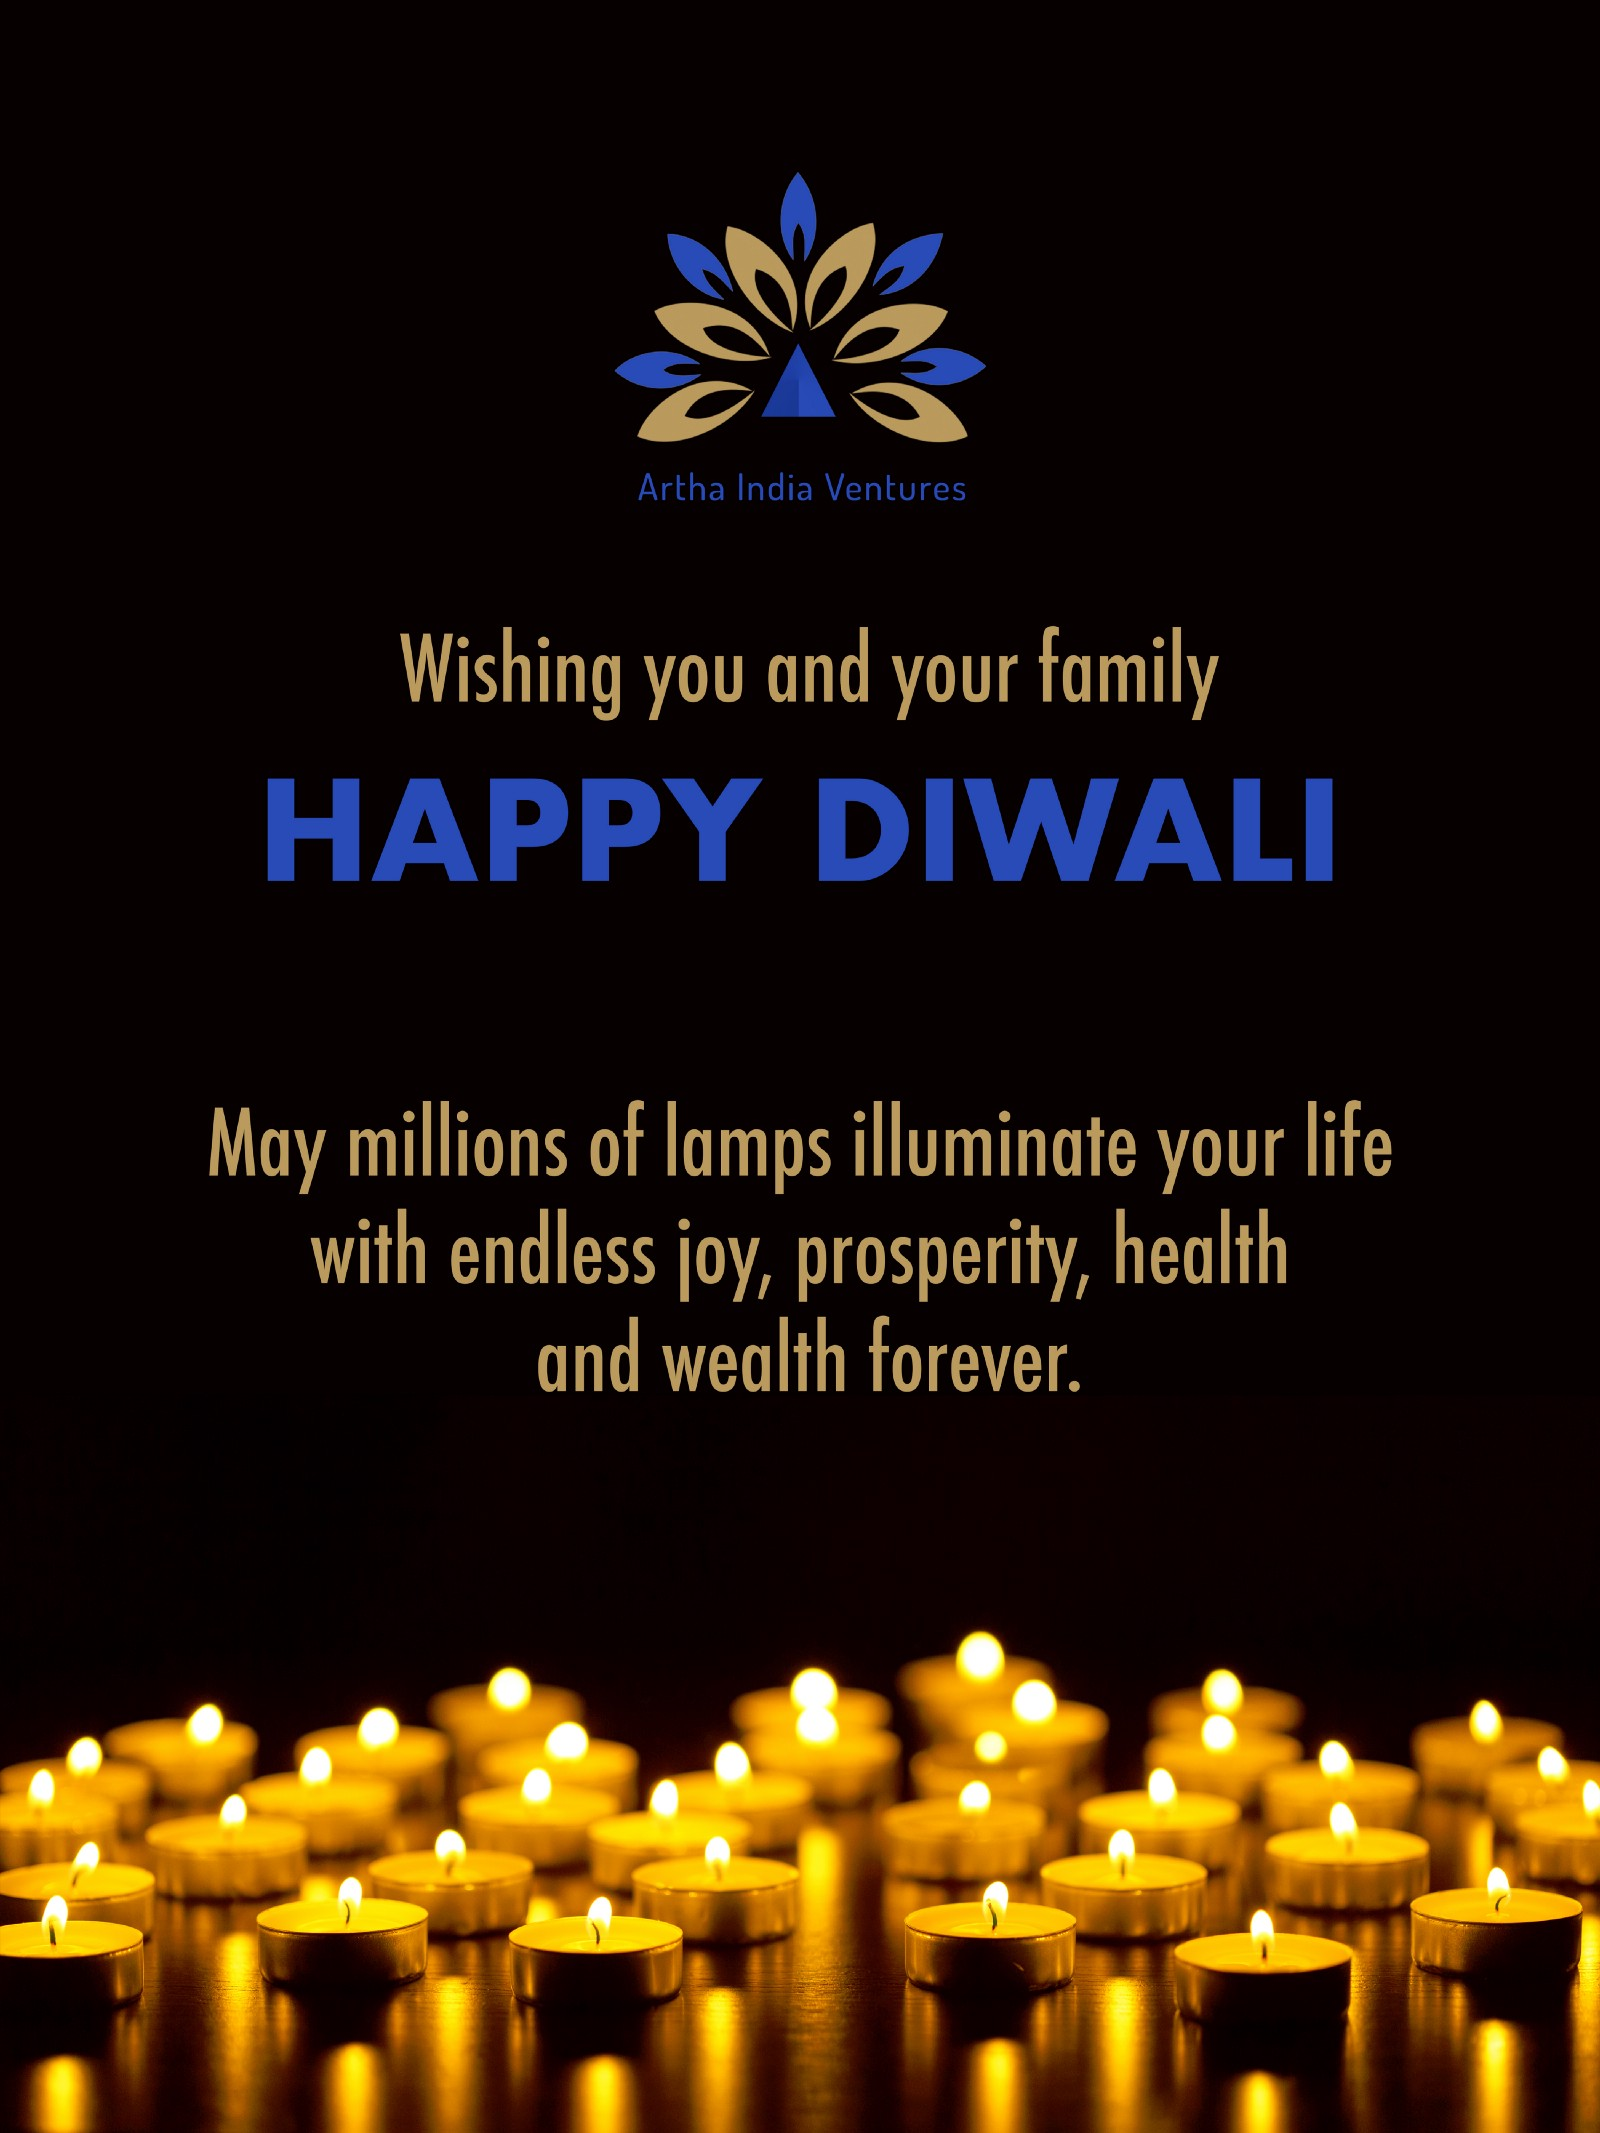 a belated happy diwali and happy new year to everyone reading this